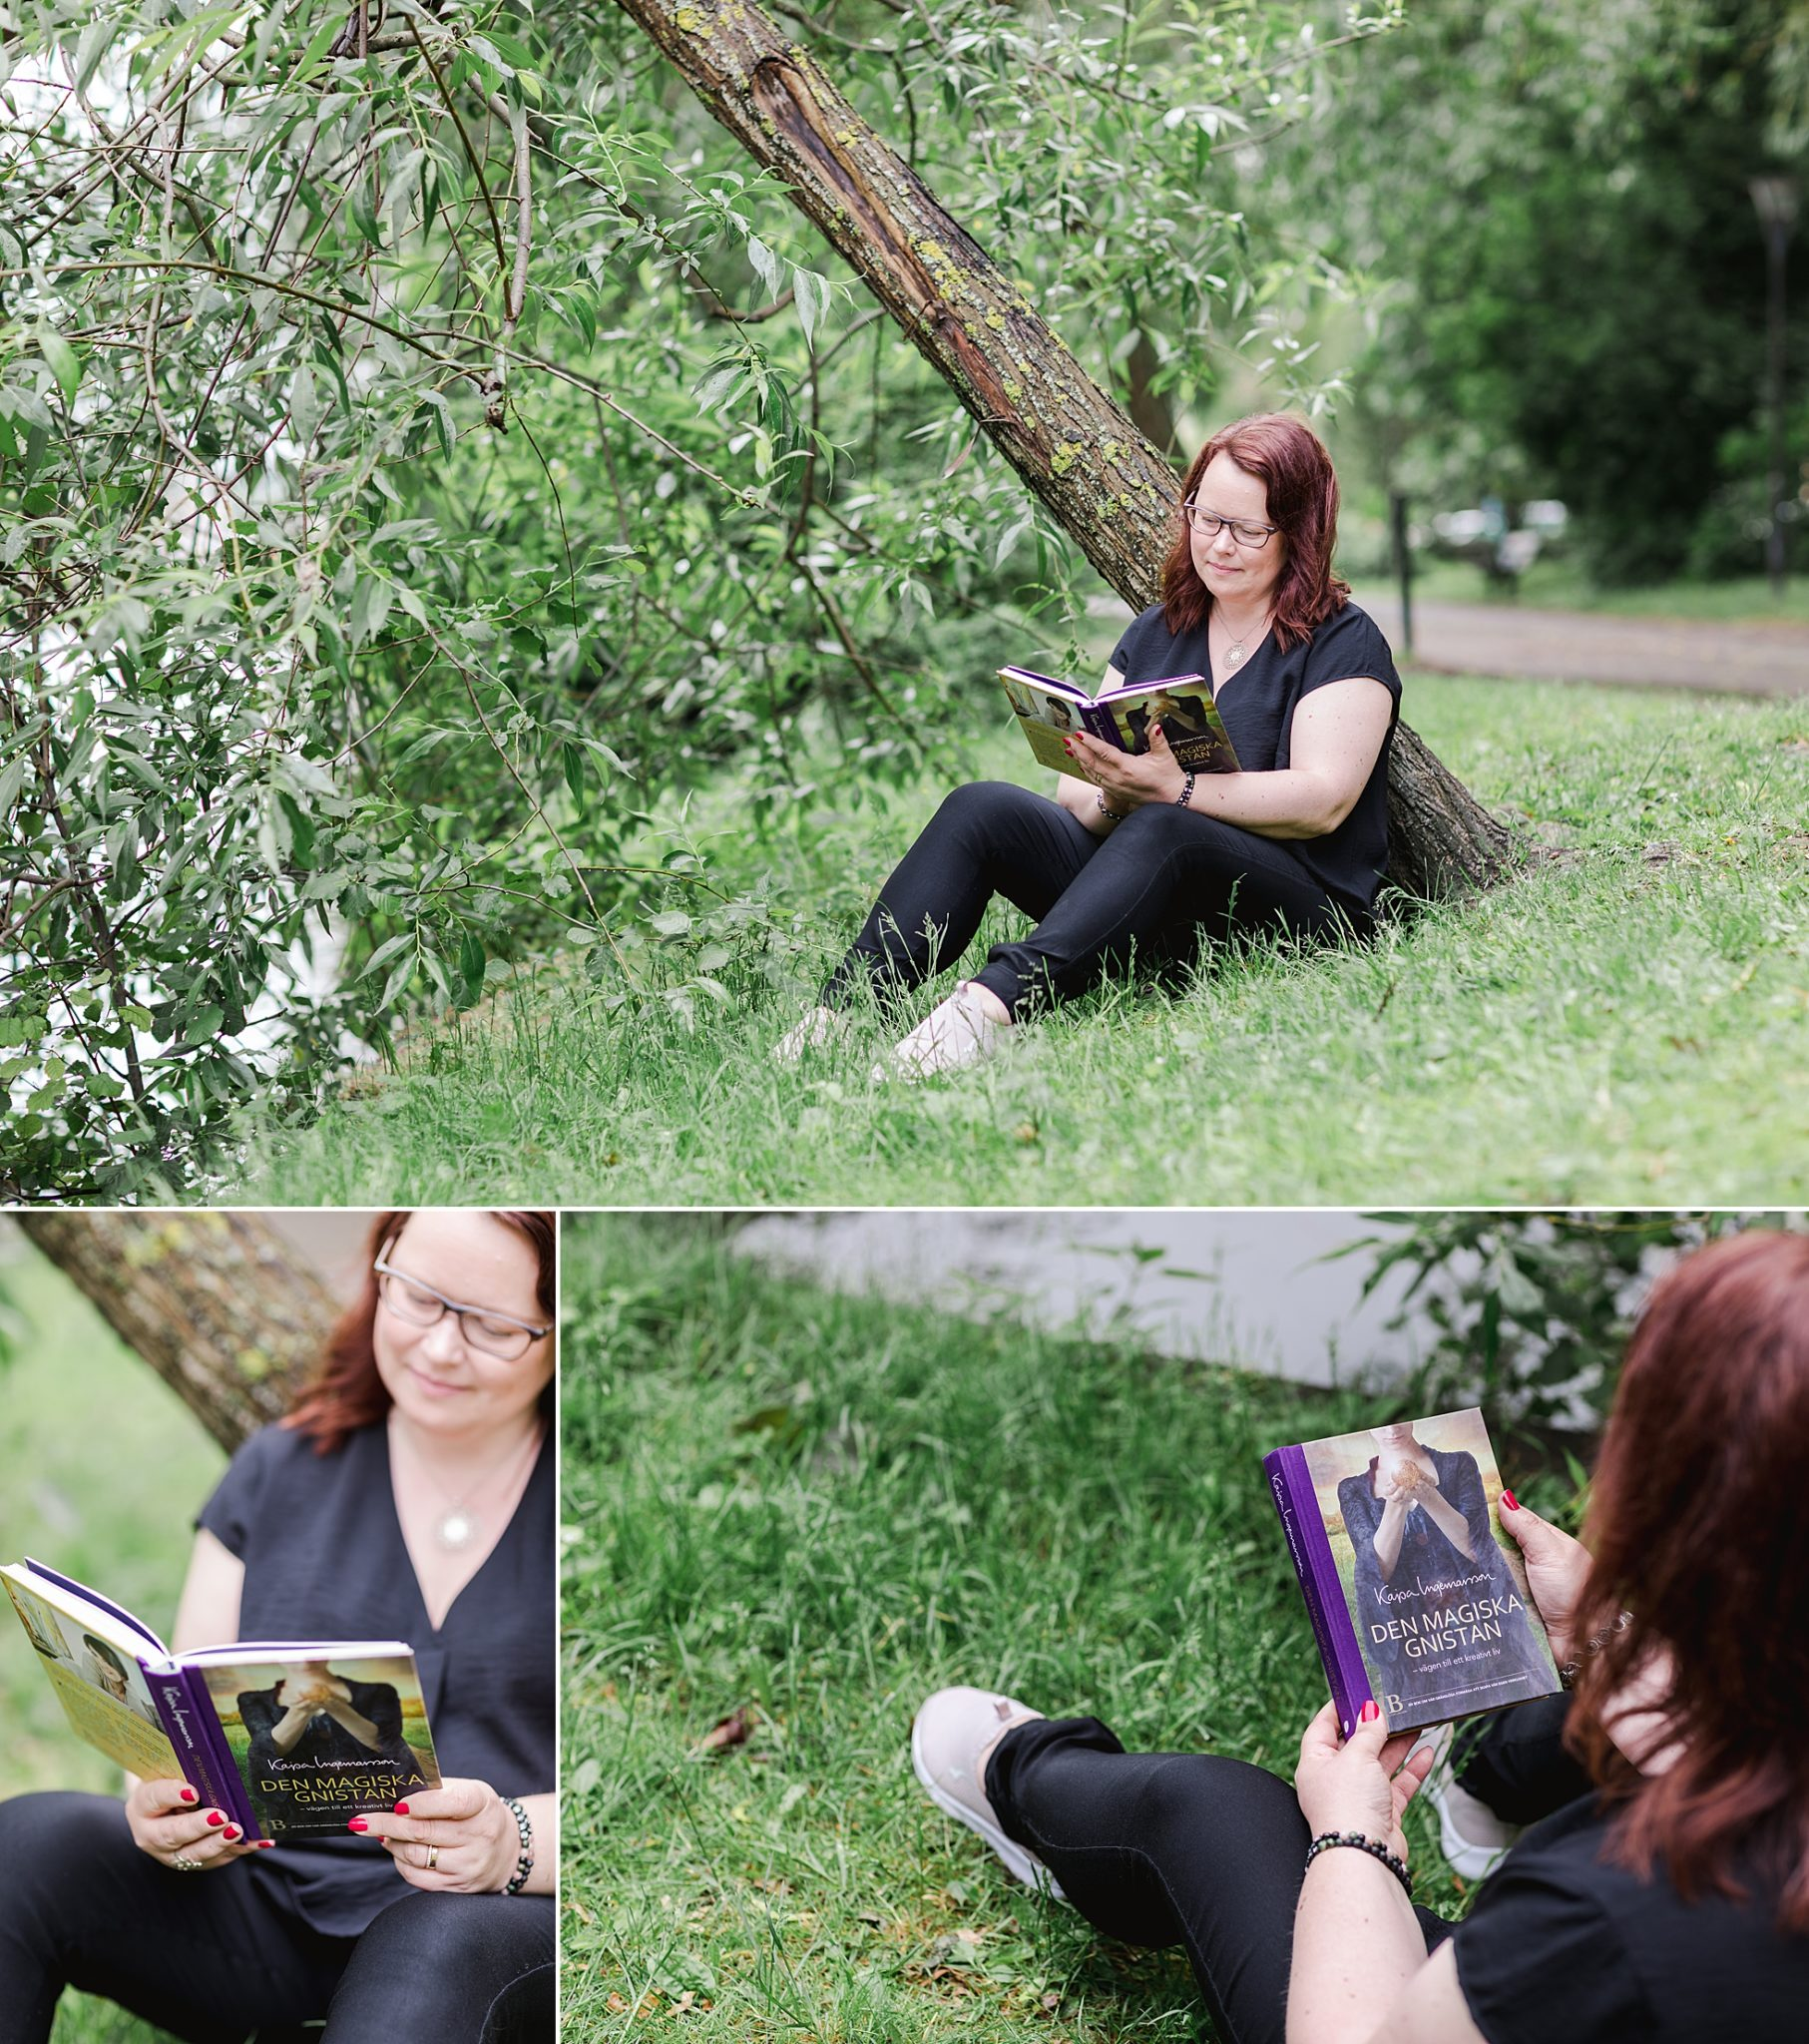 A woman sitting in a park reading a book